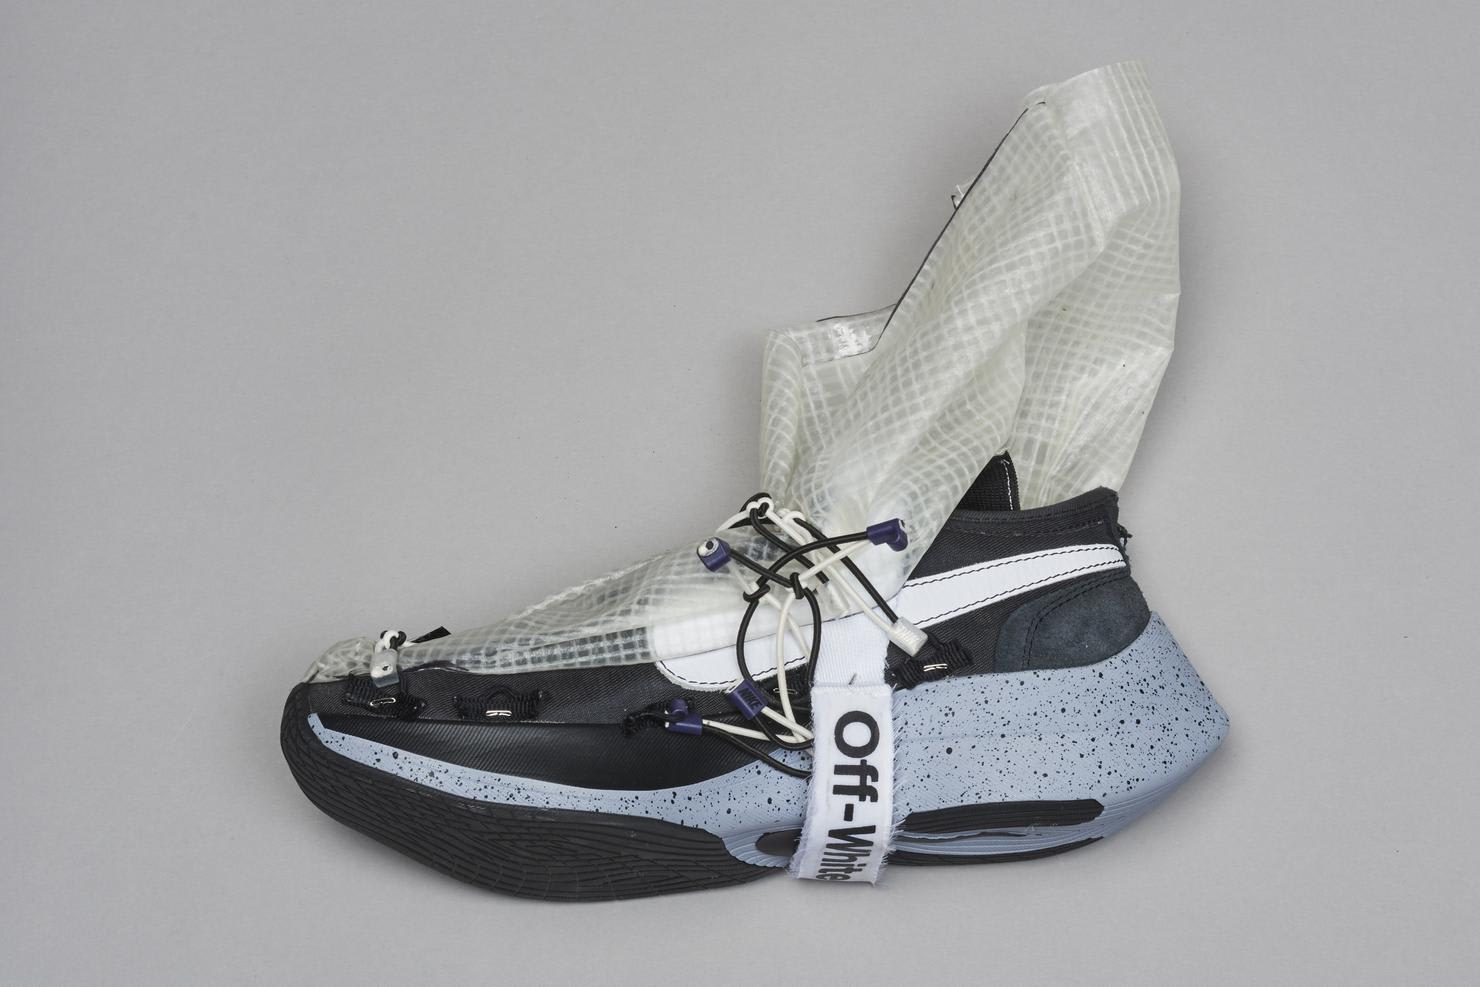 Off-White x Nike Moon Racer Prototype